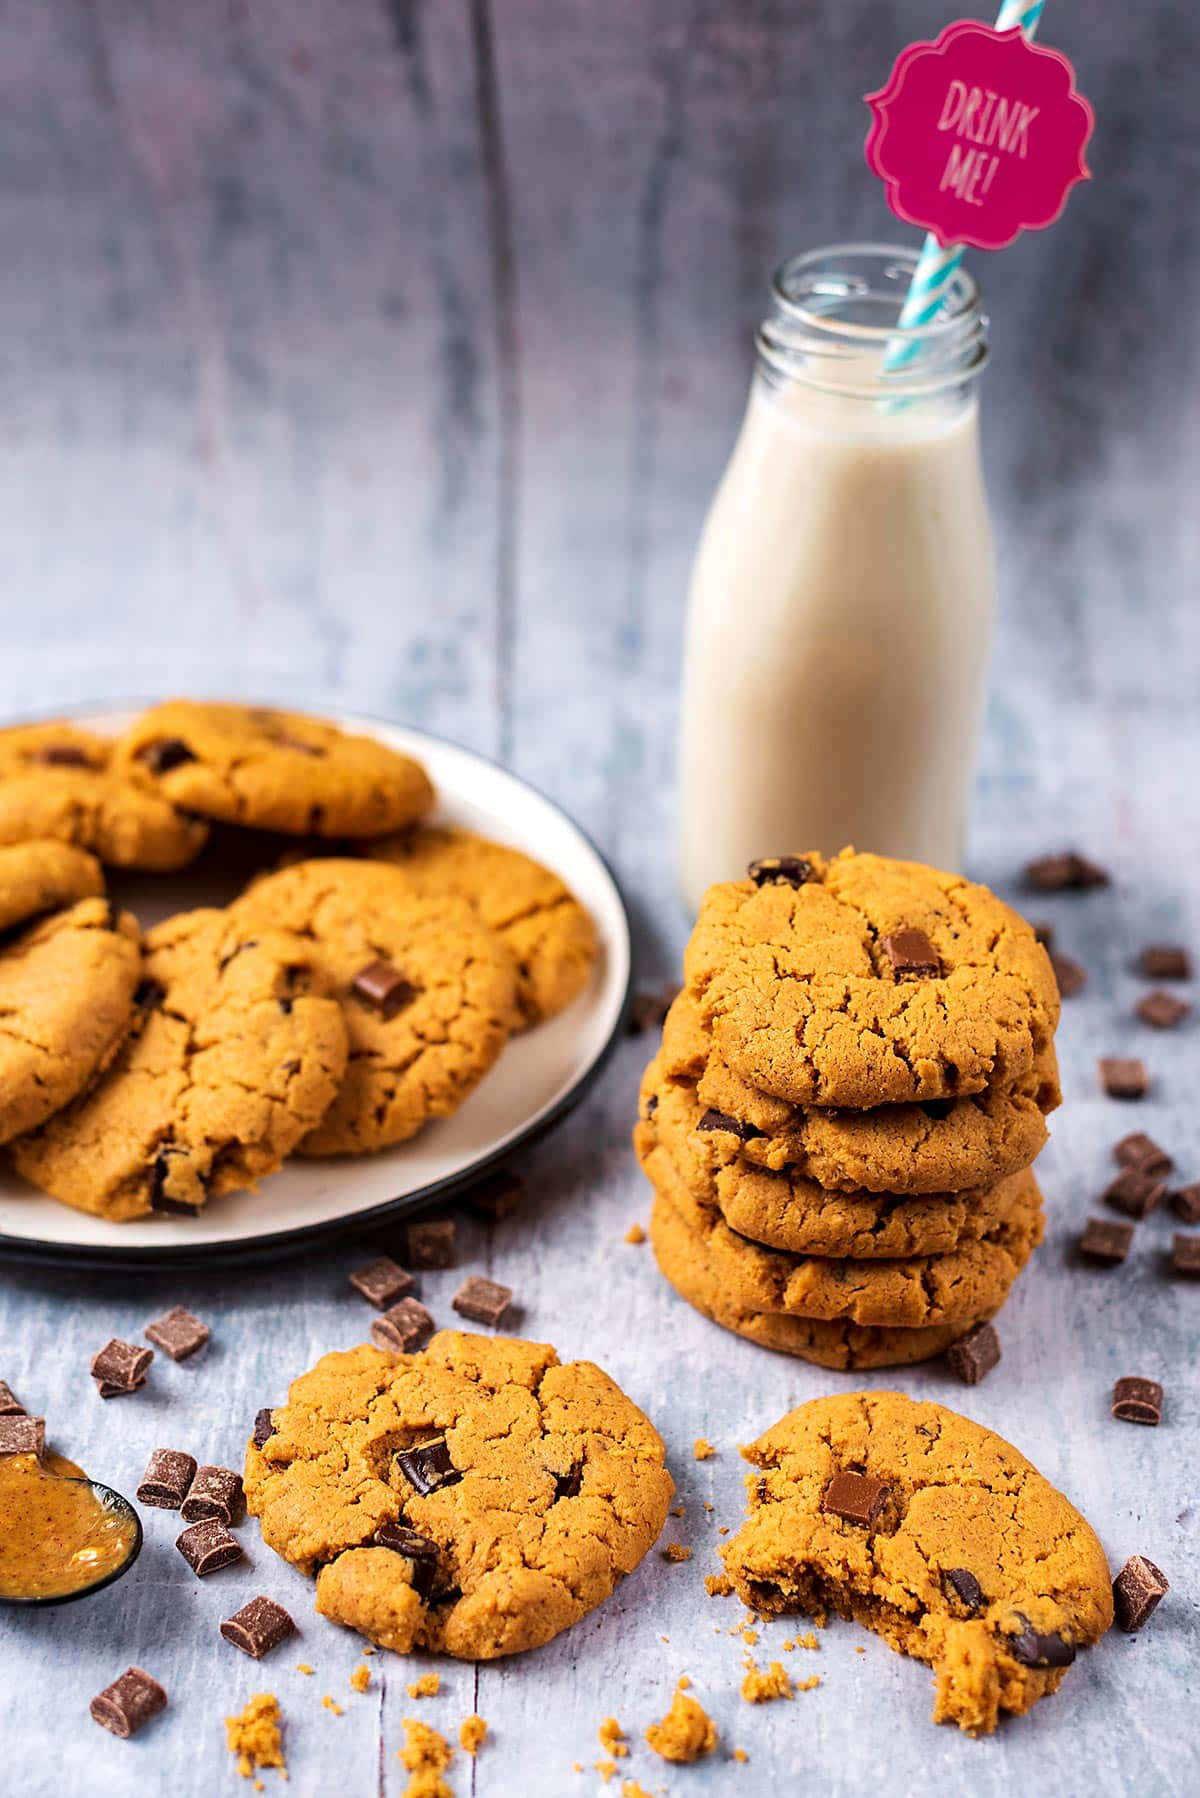 A plate of chocolate chip cookies next to a stack of more cookies and a bottle of milk